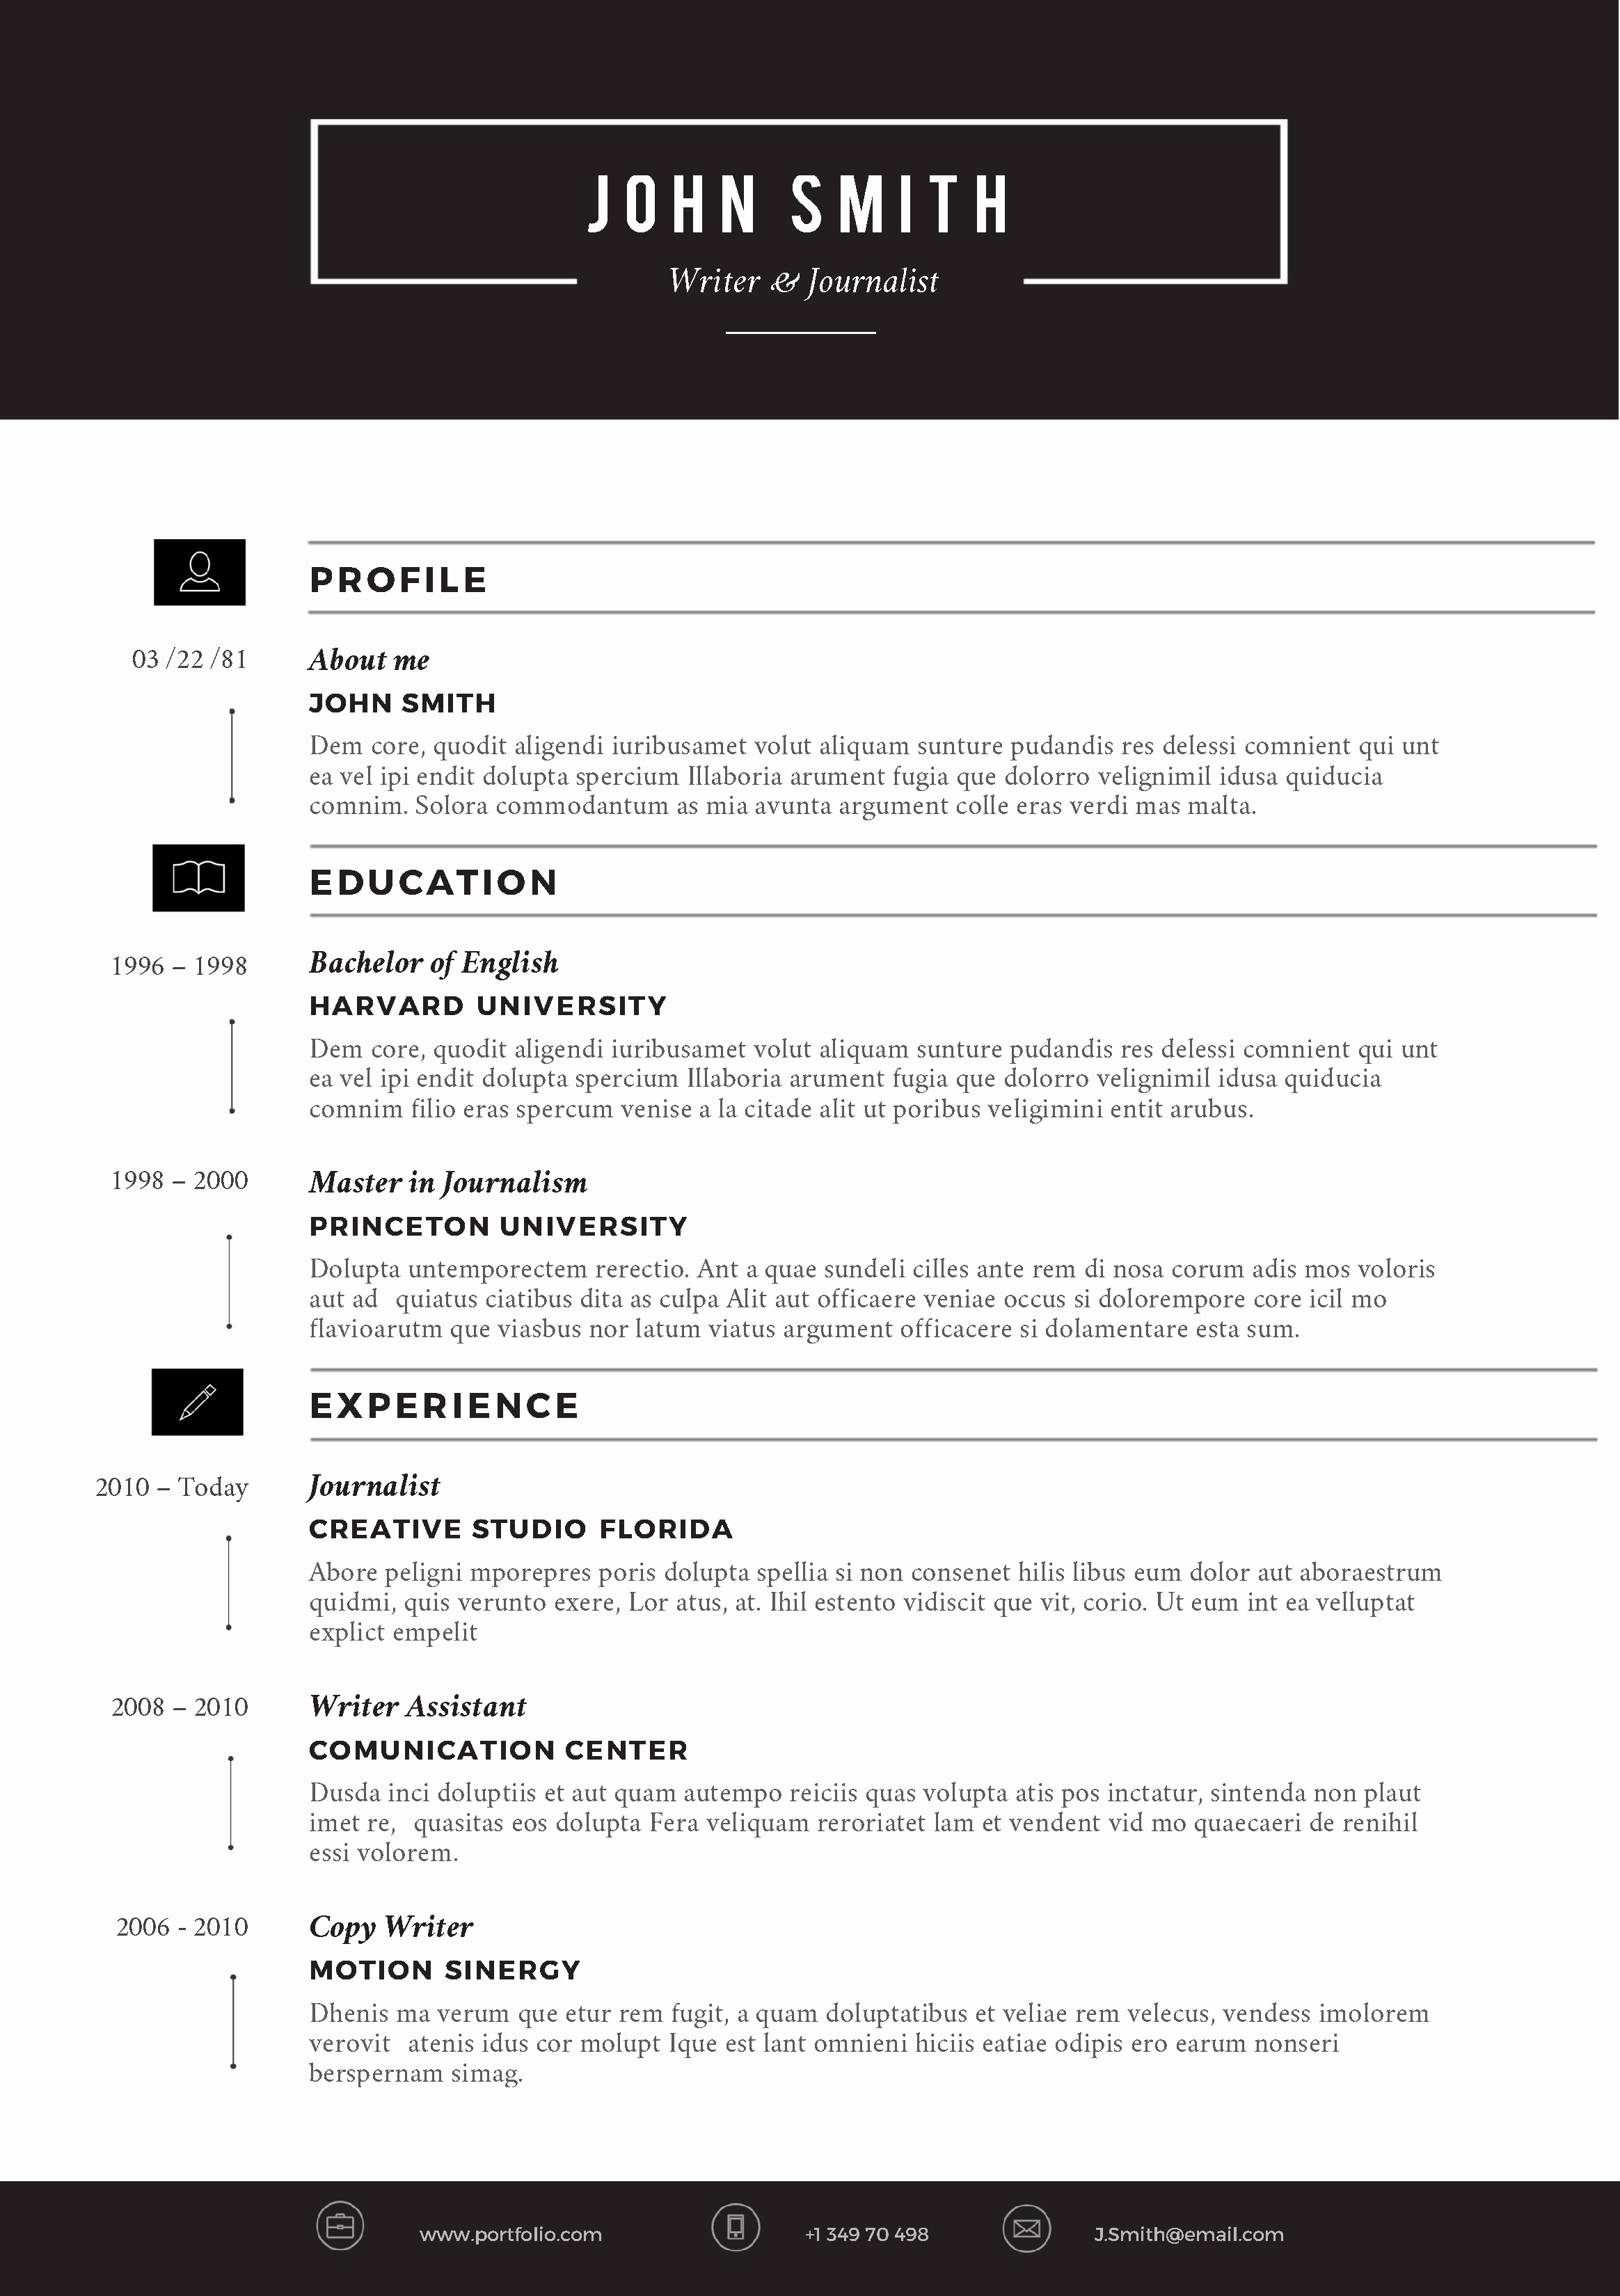 Ms Office Word Resume Templates Luxury Cvfolio Best 10 Resume Templates for Microsoft Word